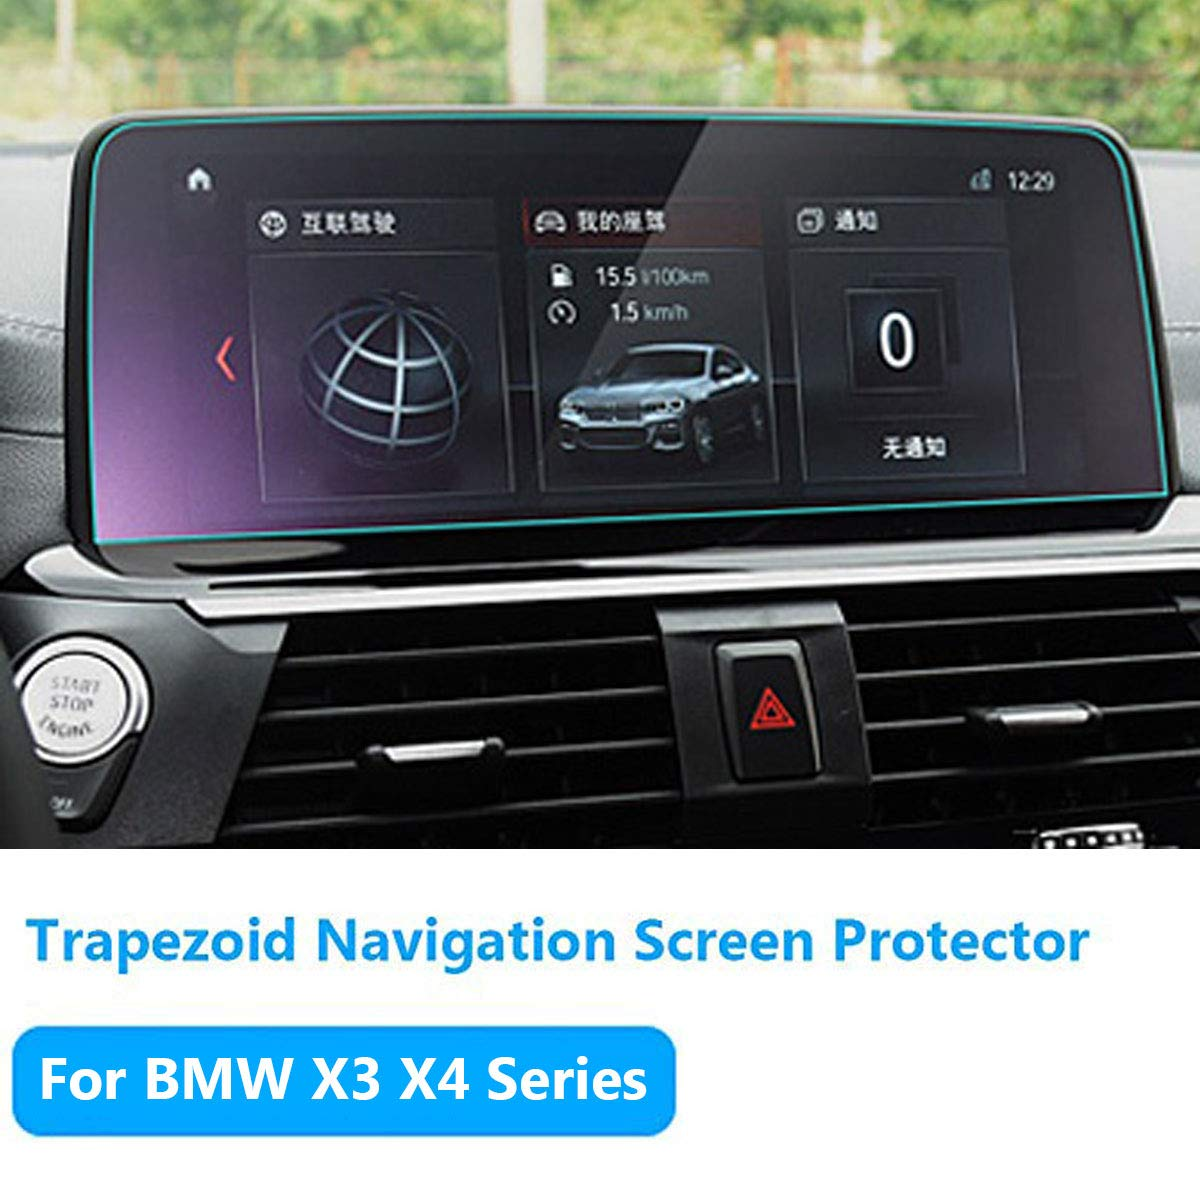 GPS System Accessories Electronics For BMW X5 X6 Series Navigation ...